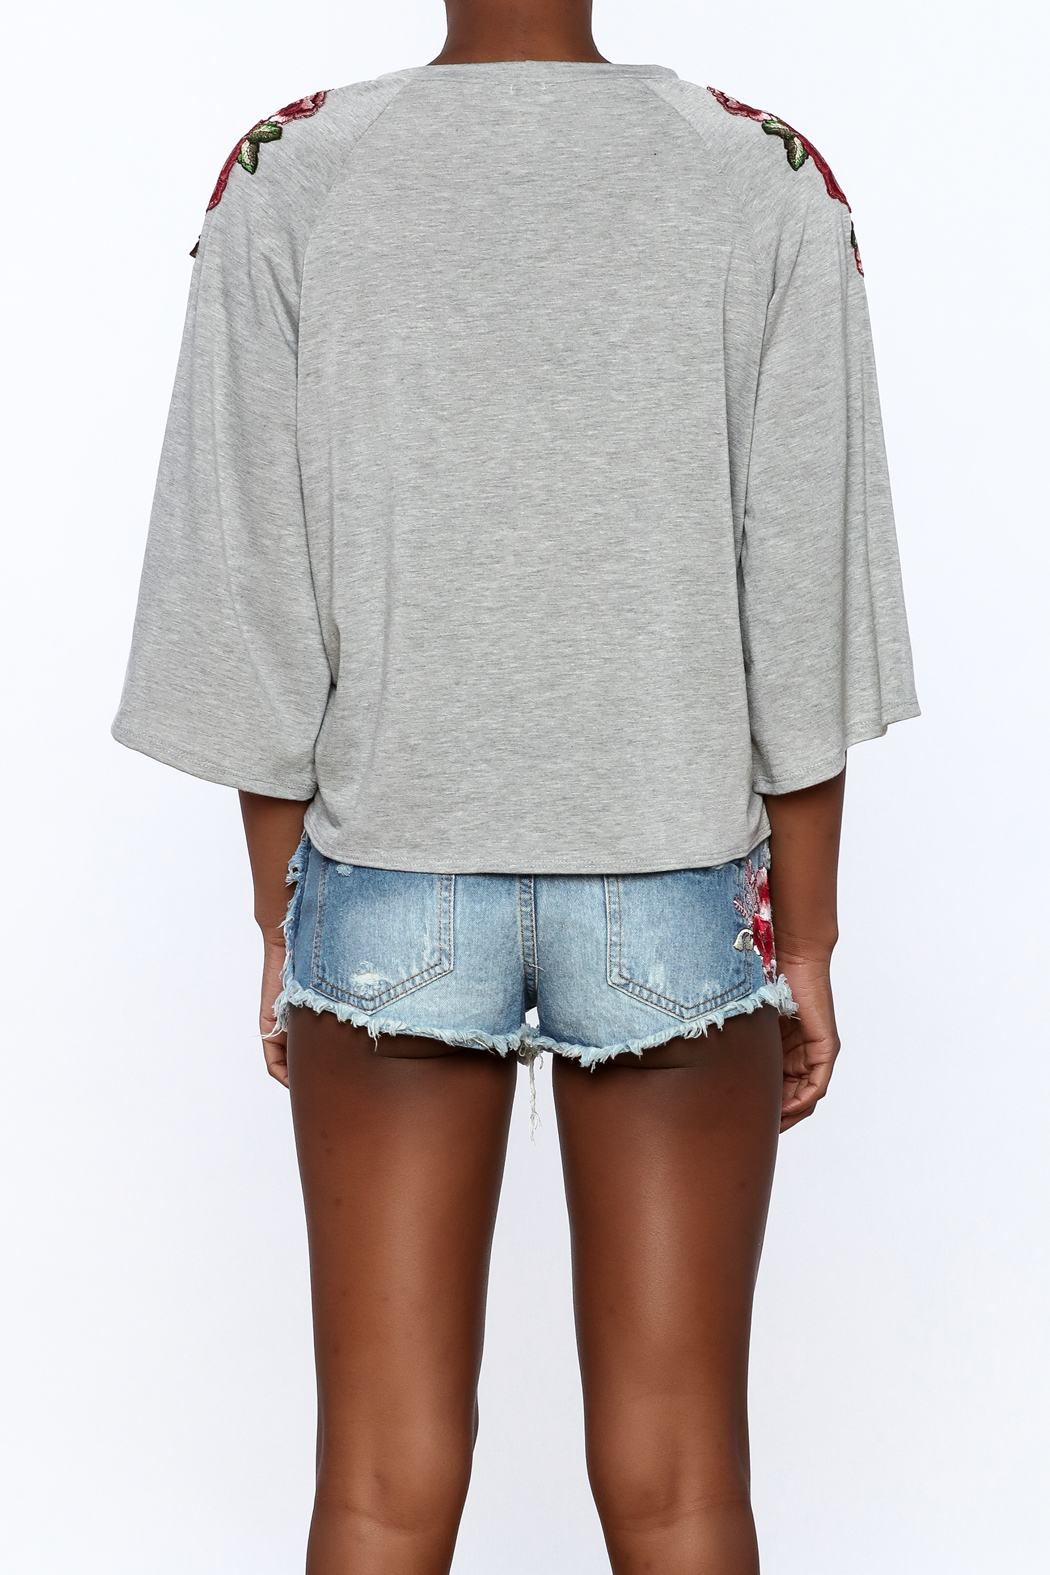 i. Joah Modern Grey Embroidered Top - Back Cropped Image